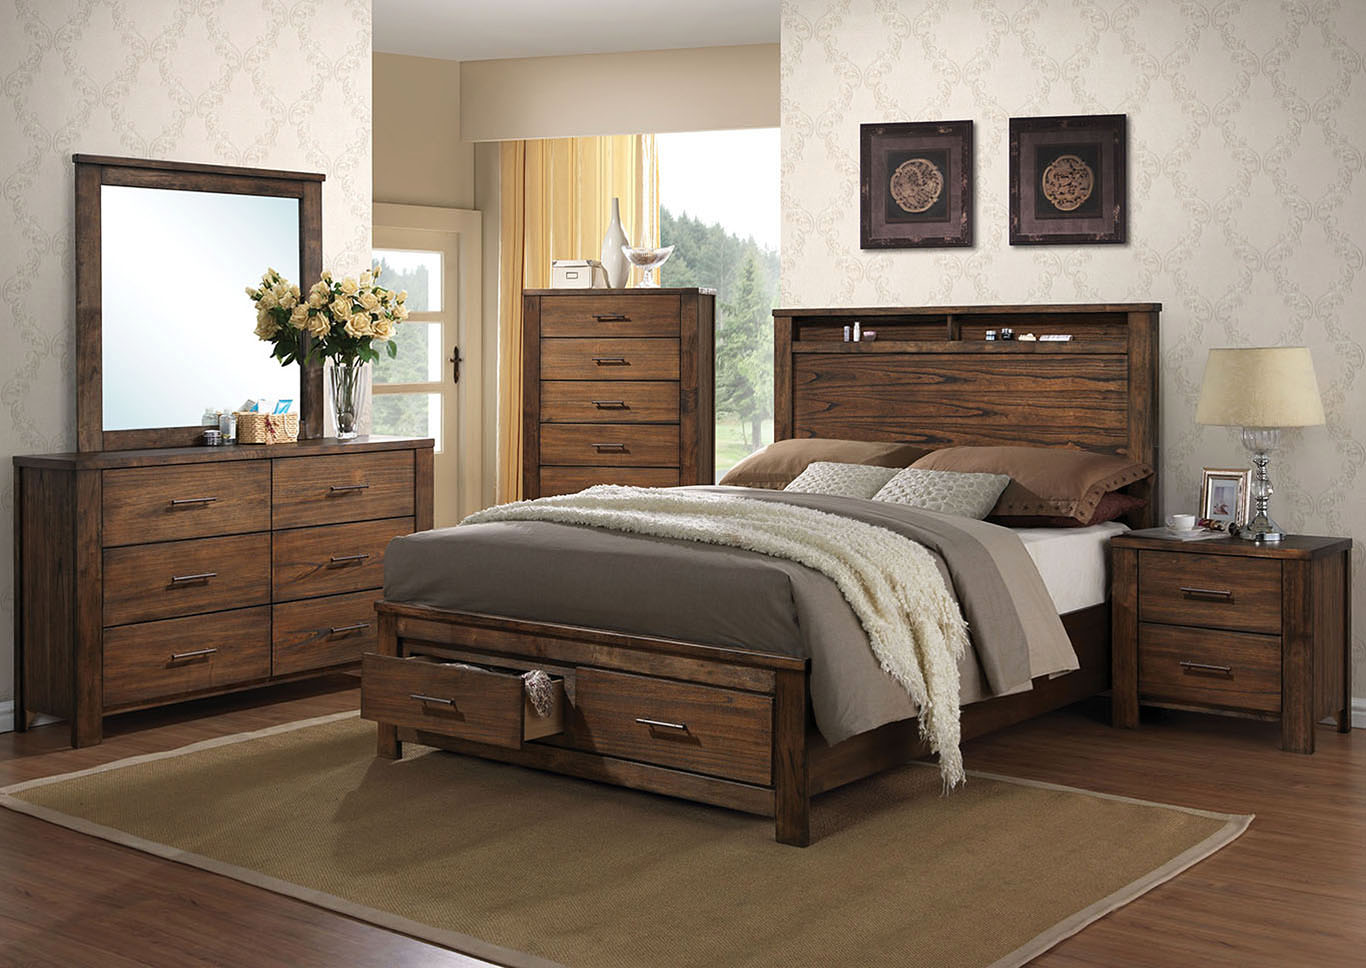 Merrilee Oak Eastern King Storage Bed w/Dresser and Mirror,Acme